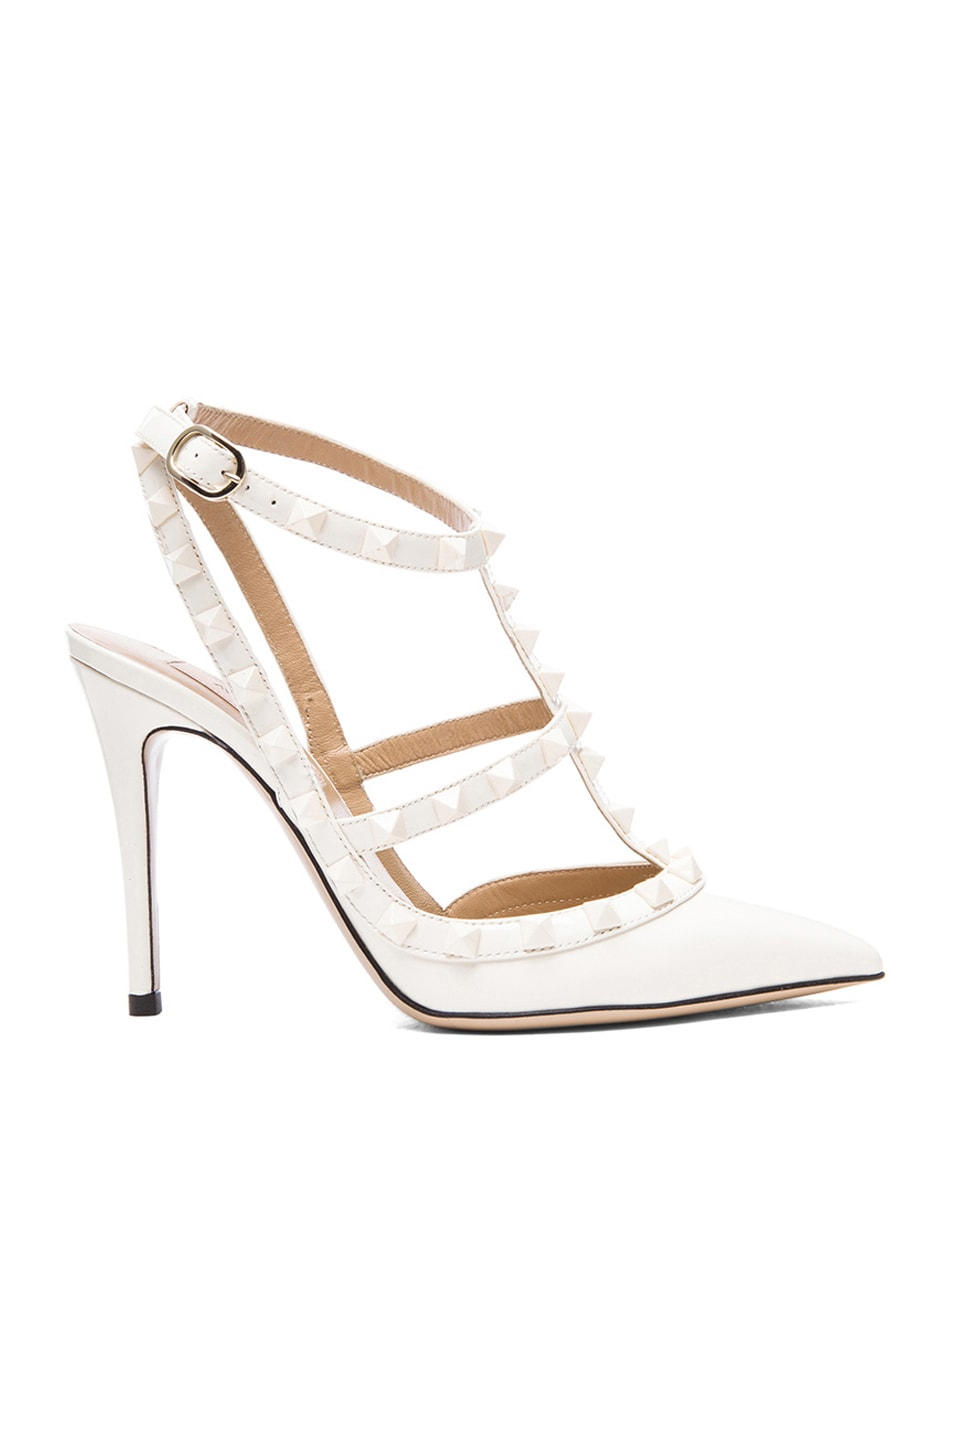 Image 1 of Valentino Rockstud Punkouture Patent Slingbacks T.100 in Light Ivory